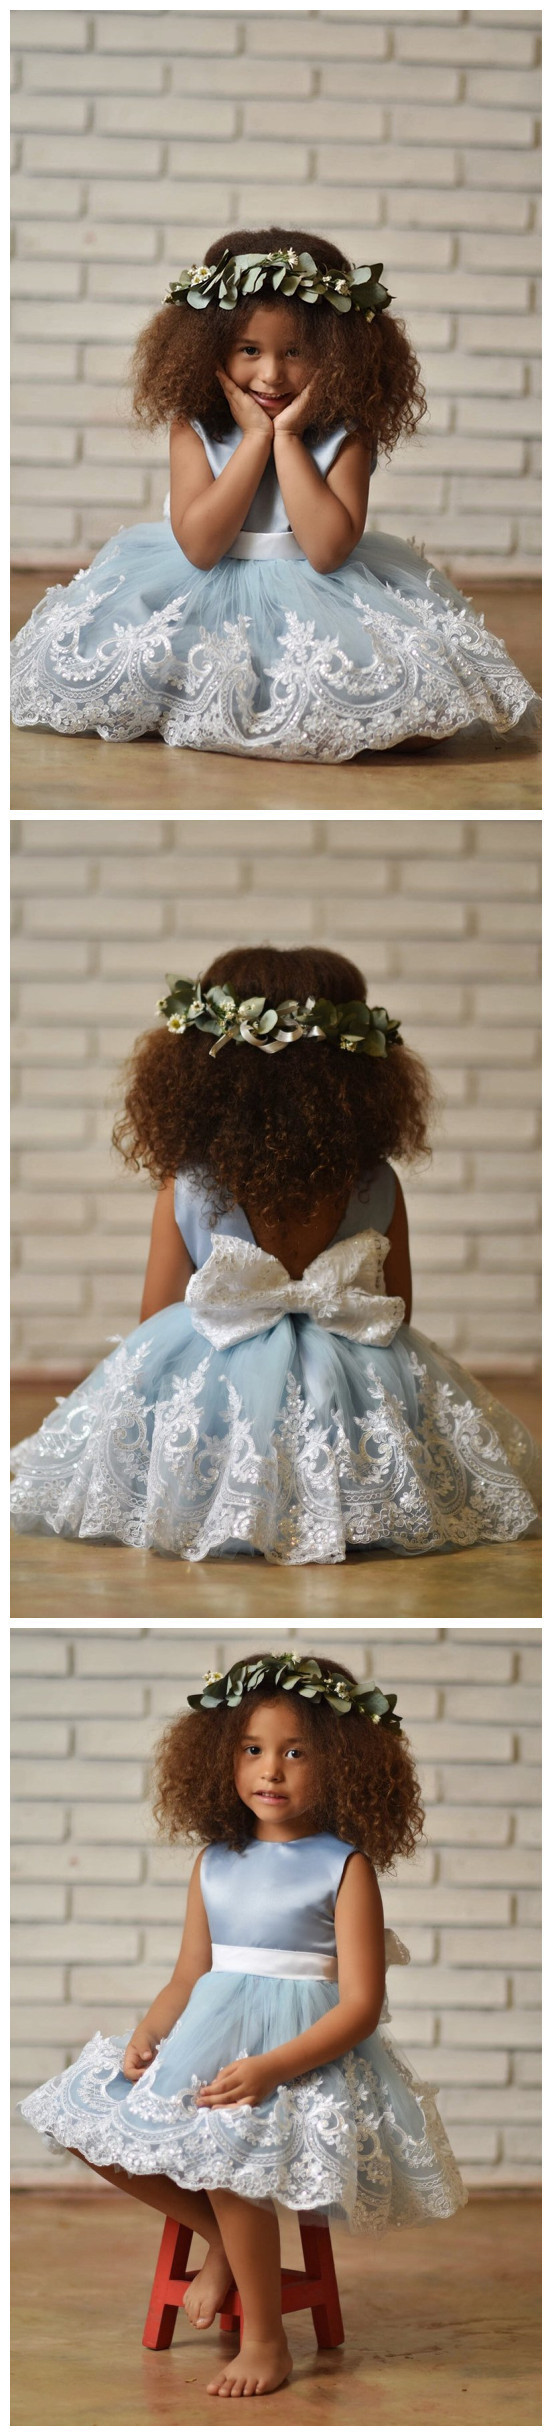 Blue Flower Girl Dress, Baby Blue Birthday Gir Dresses with Embroidered Lace